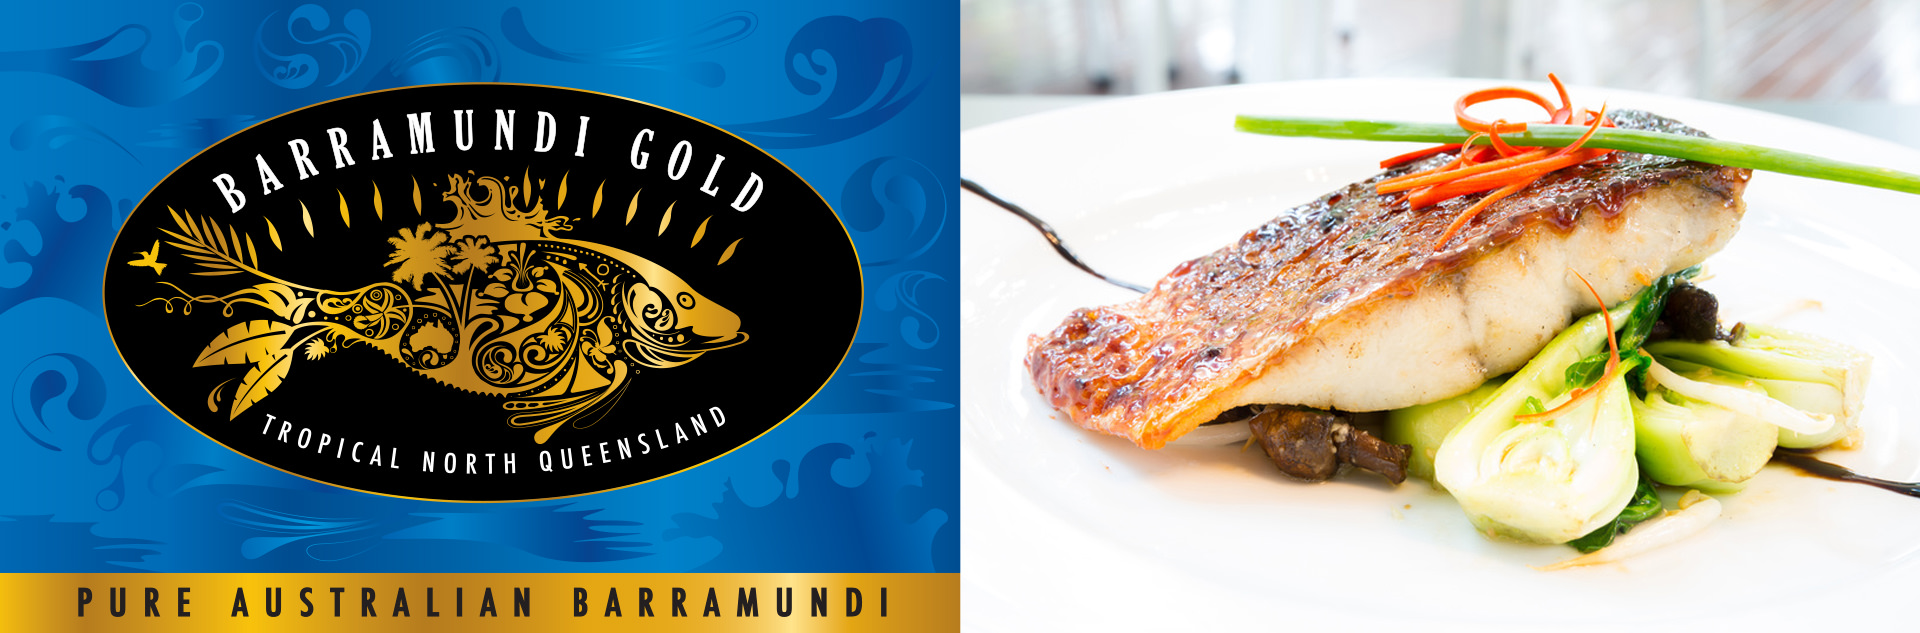 Australian-barramundi-gold-logo-meal-home